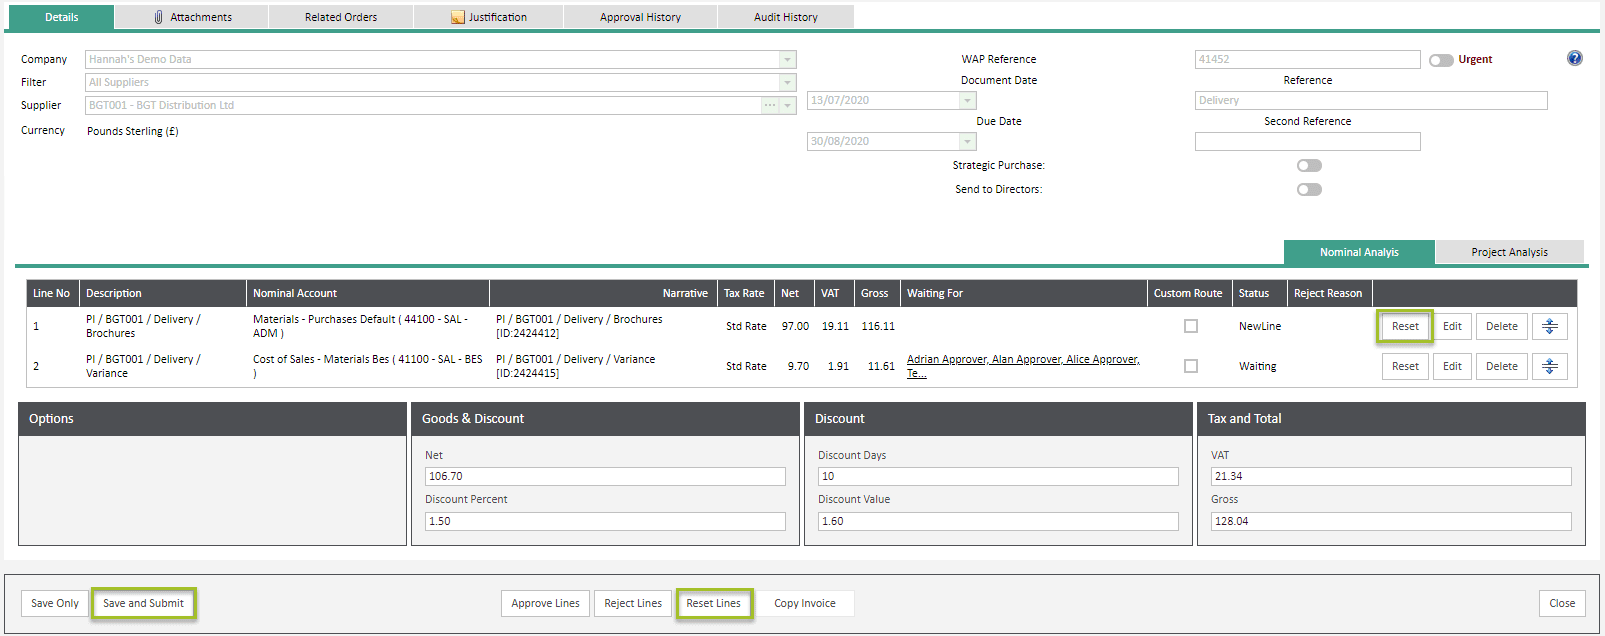 Sicon WAP Invoice Help and User Guide - Invoice HUG Section 6.2 Image 3